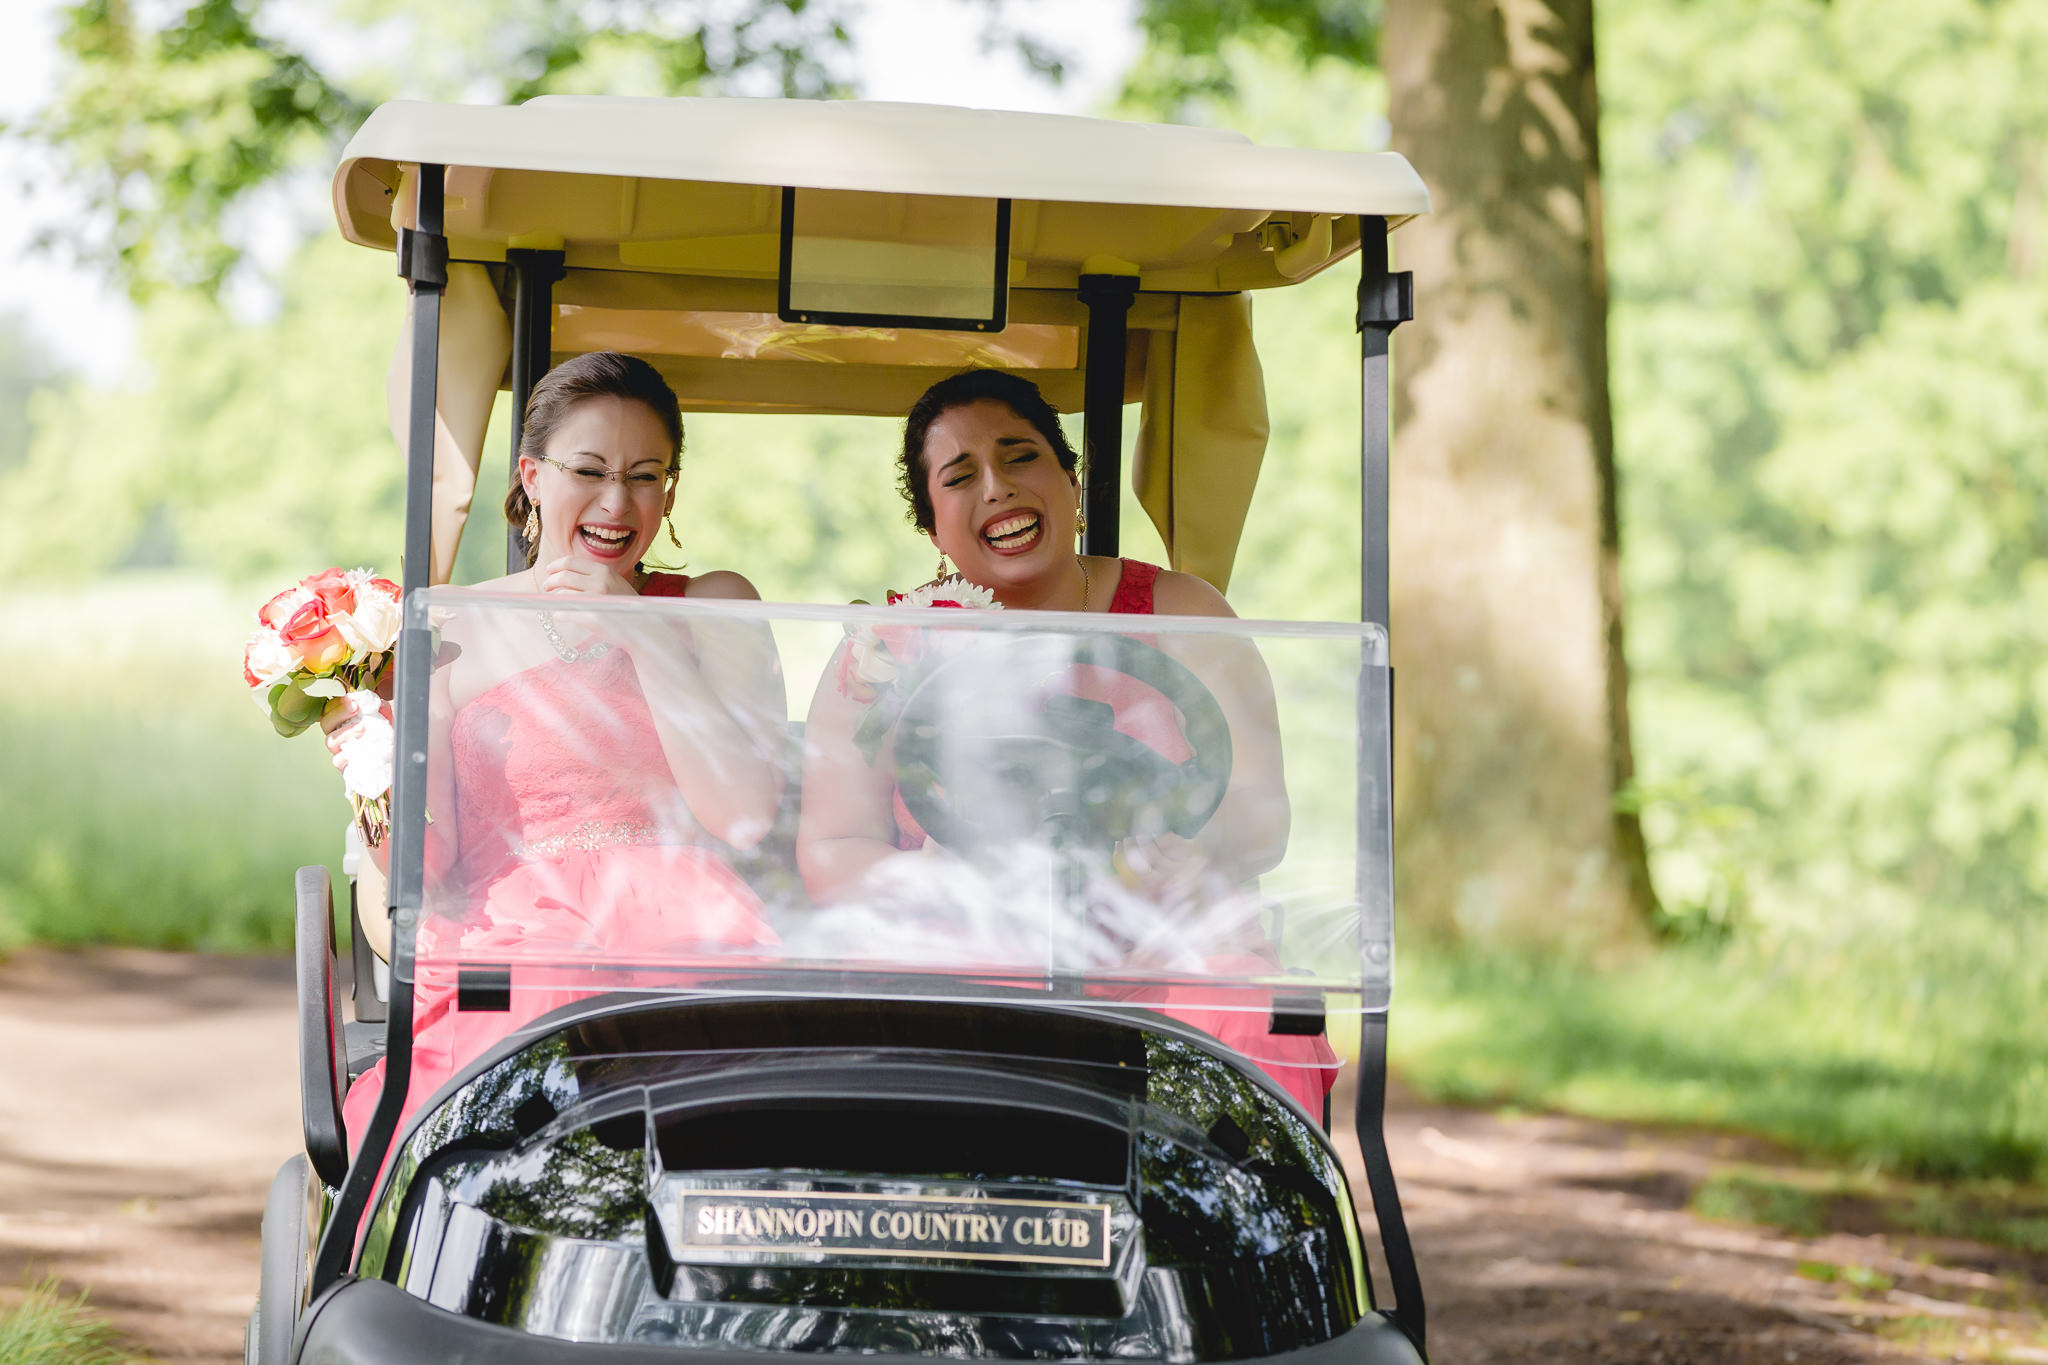 Bridesmaids laughing in golf cart at Shannopin Country Club wedding